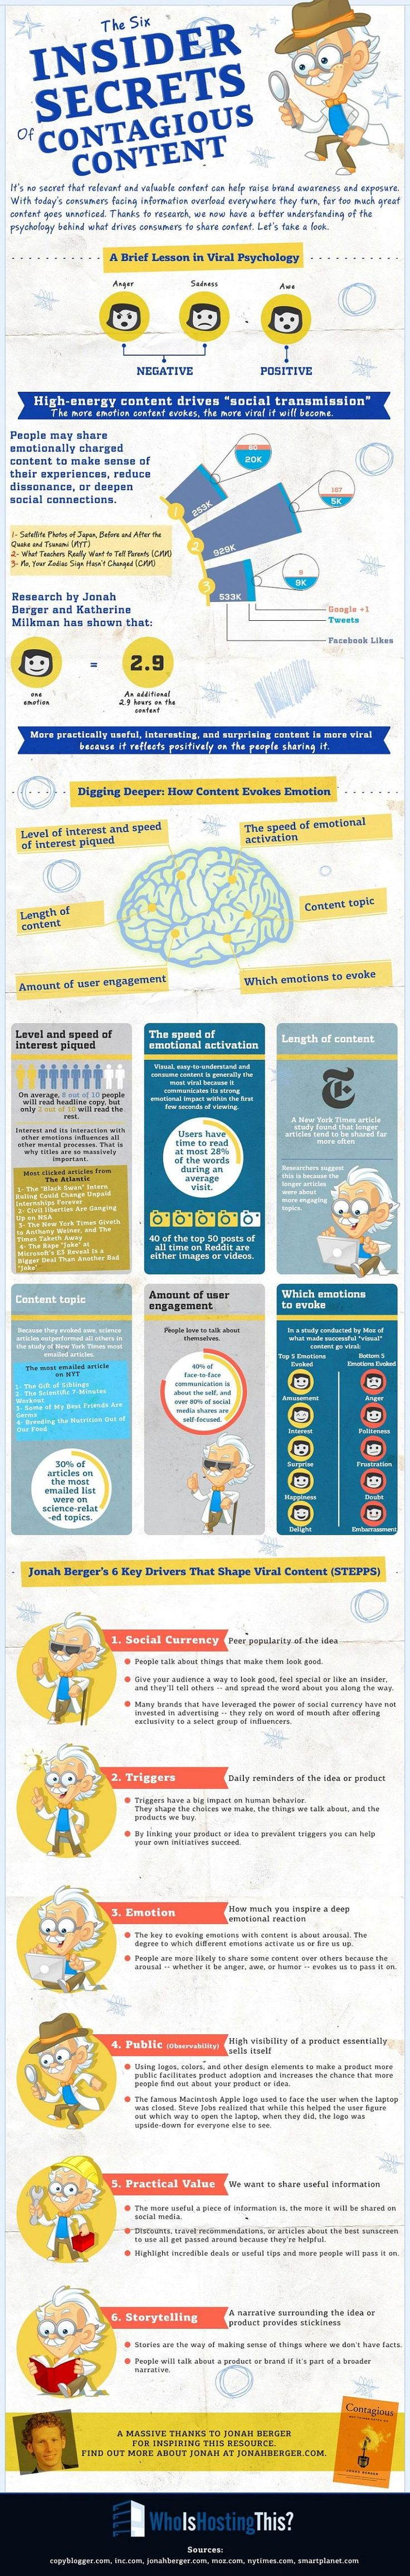 To learn more about the six features of viral content and the psychology of viral psychology, check out the following infographic:  Read more: http://www.marketingprofs.com/chirp/2014/24358/the-six-insider-secrets-of-contagious-content-infographic#ixzz2tRY3wjvP